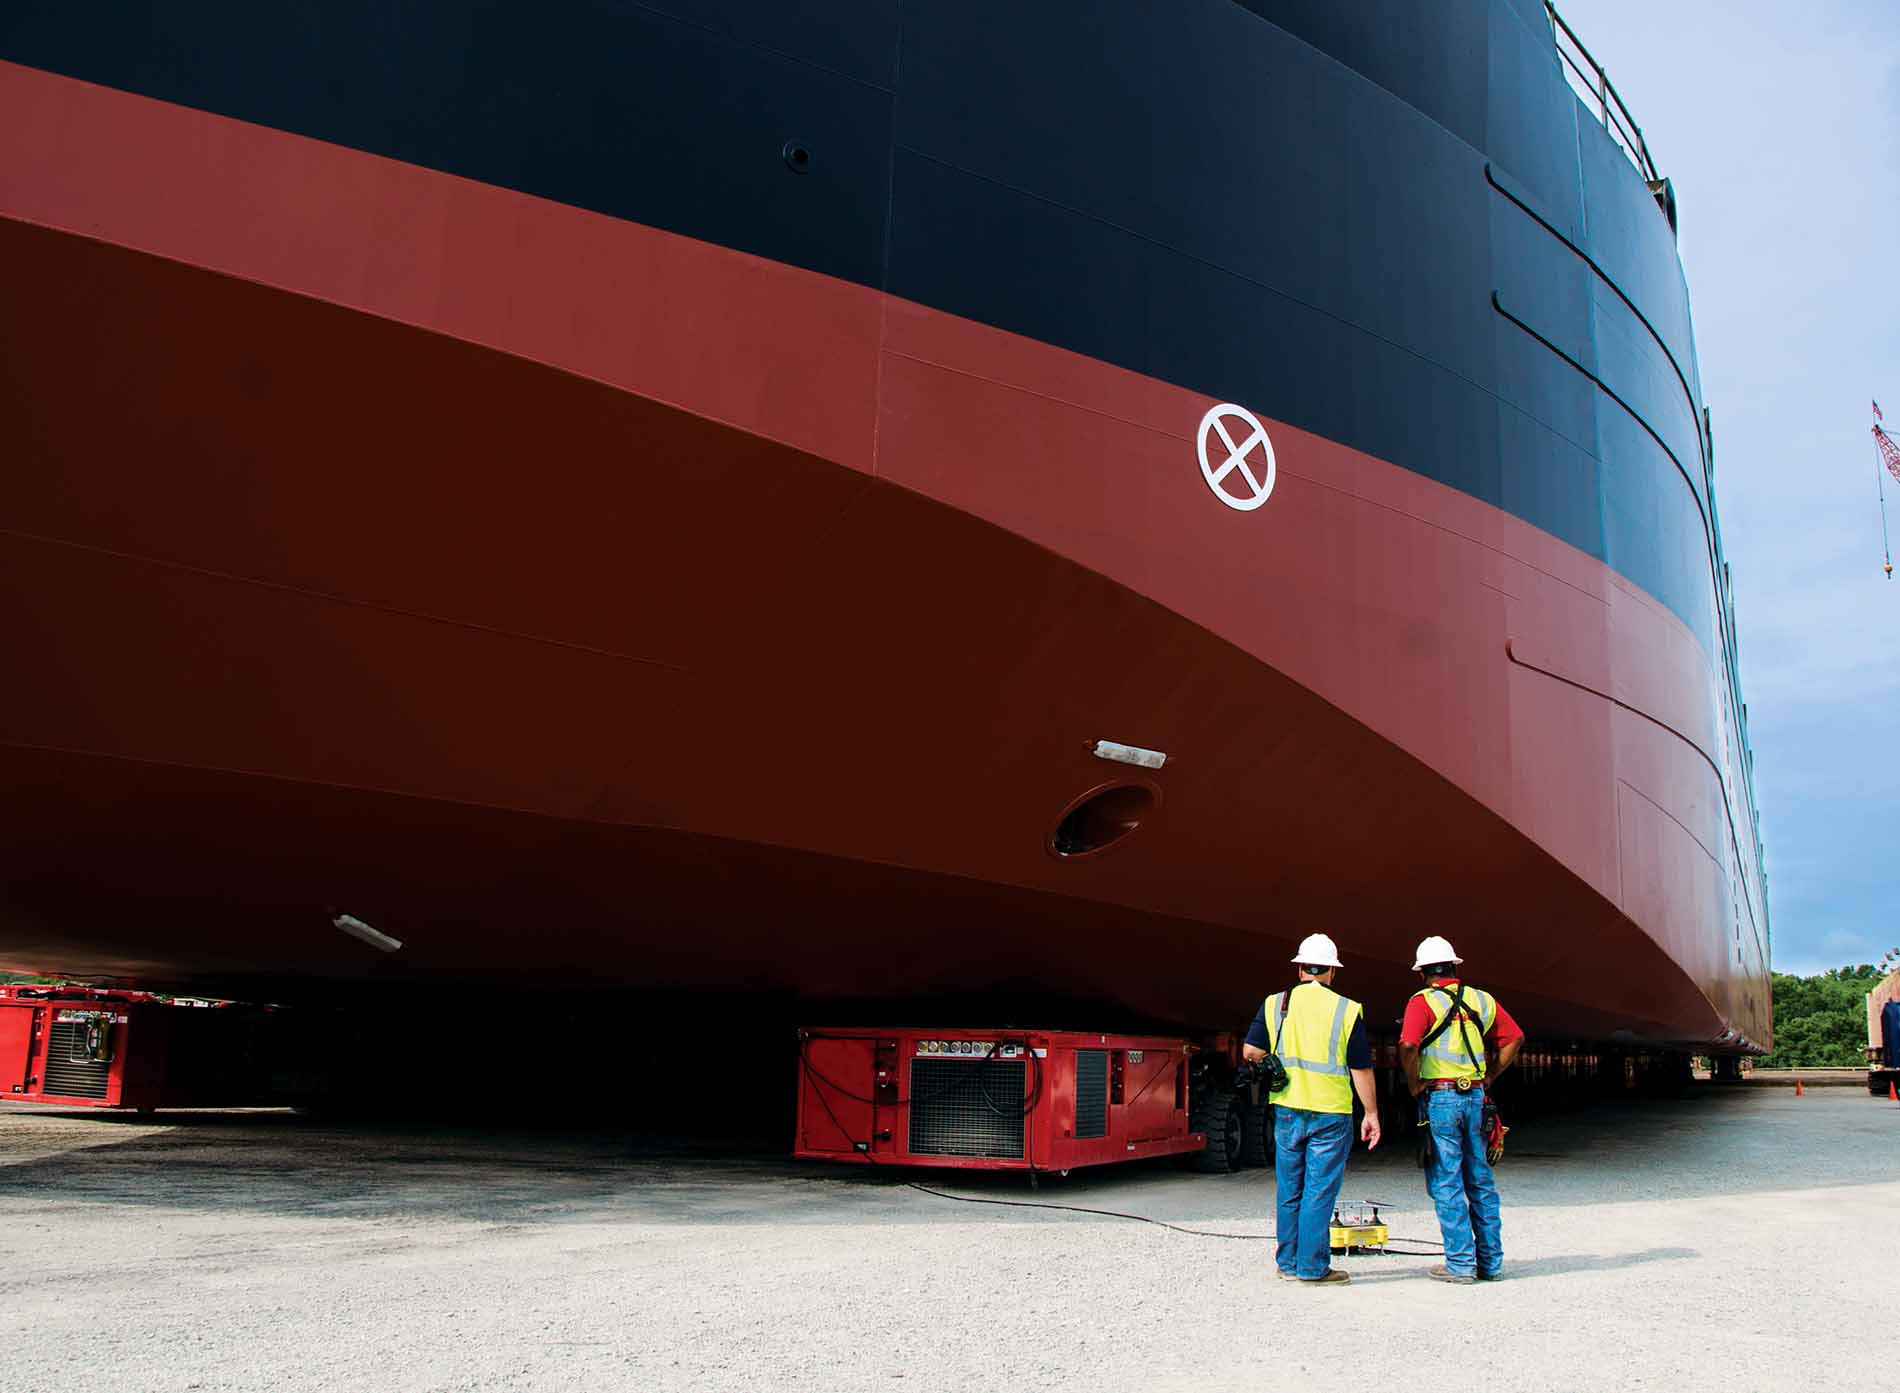 Two men standing in front of a ship